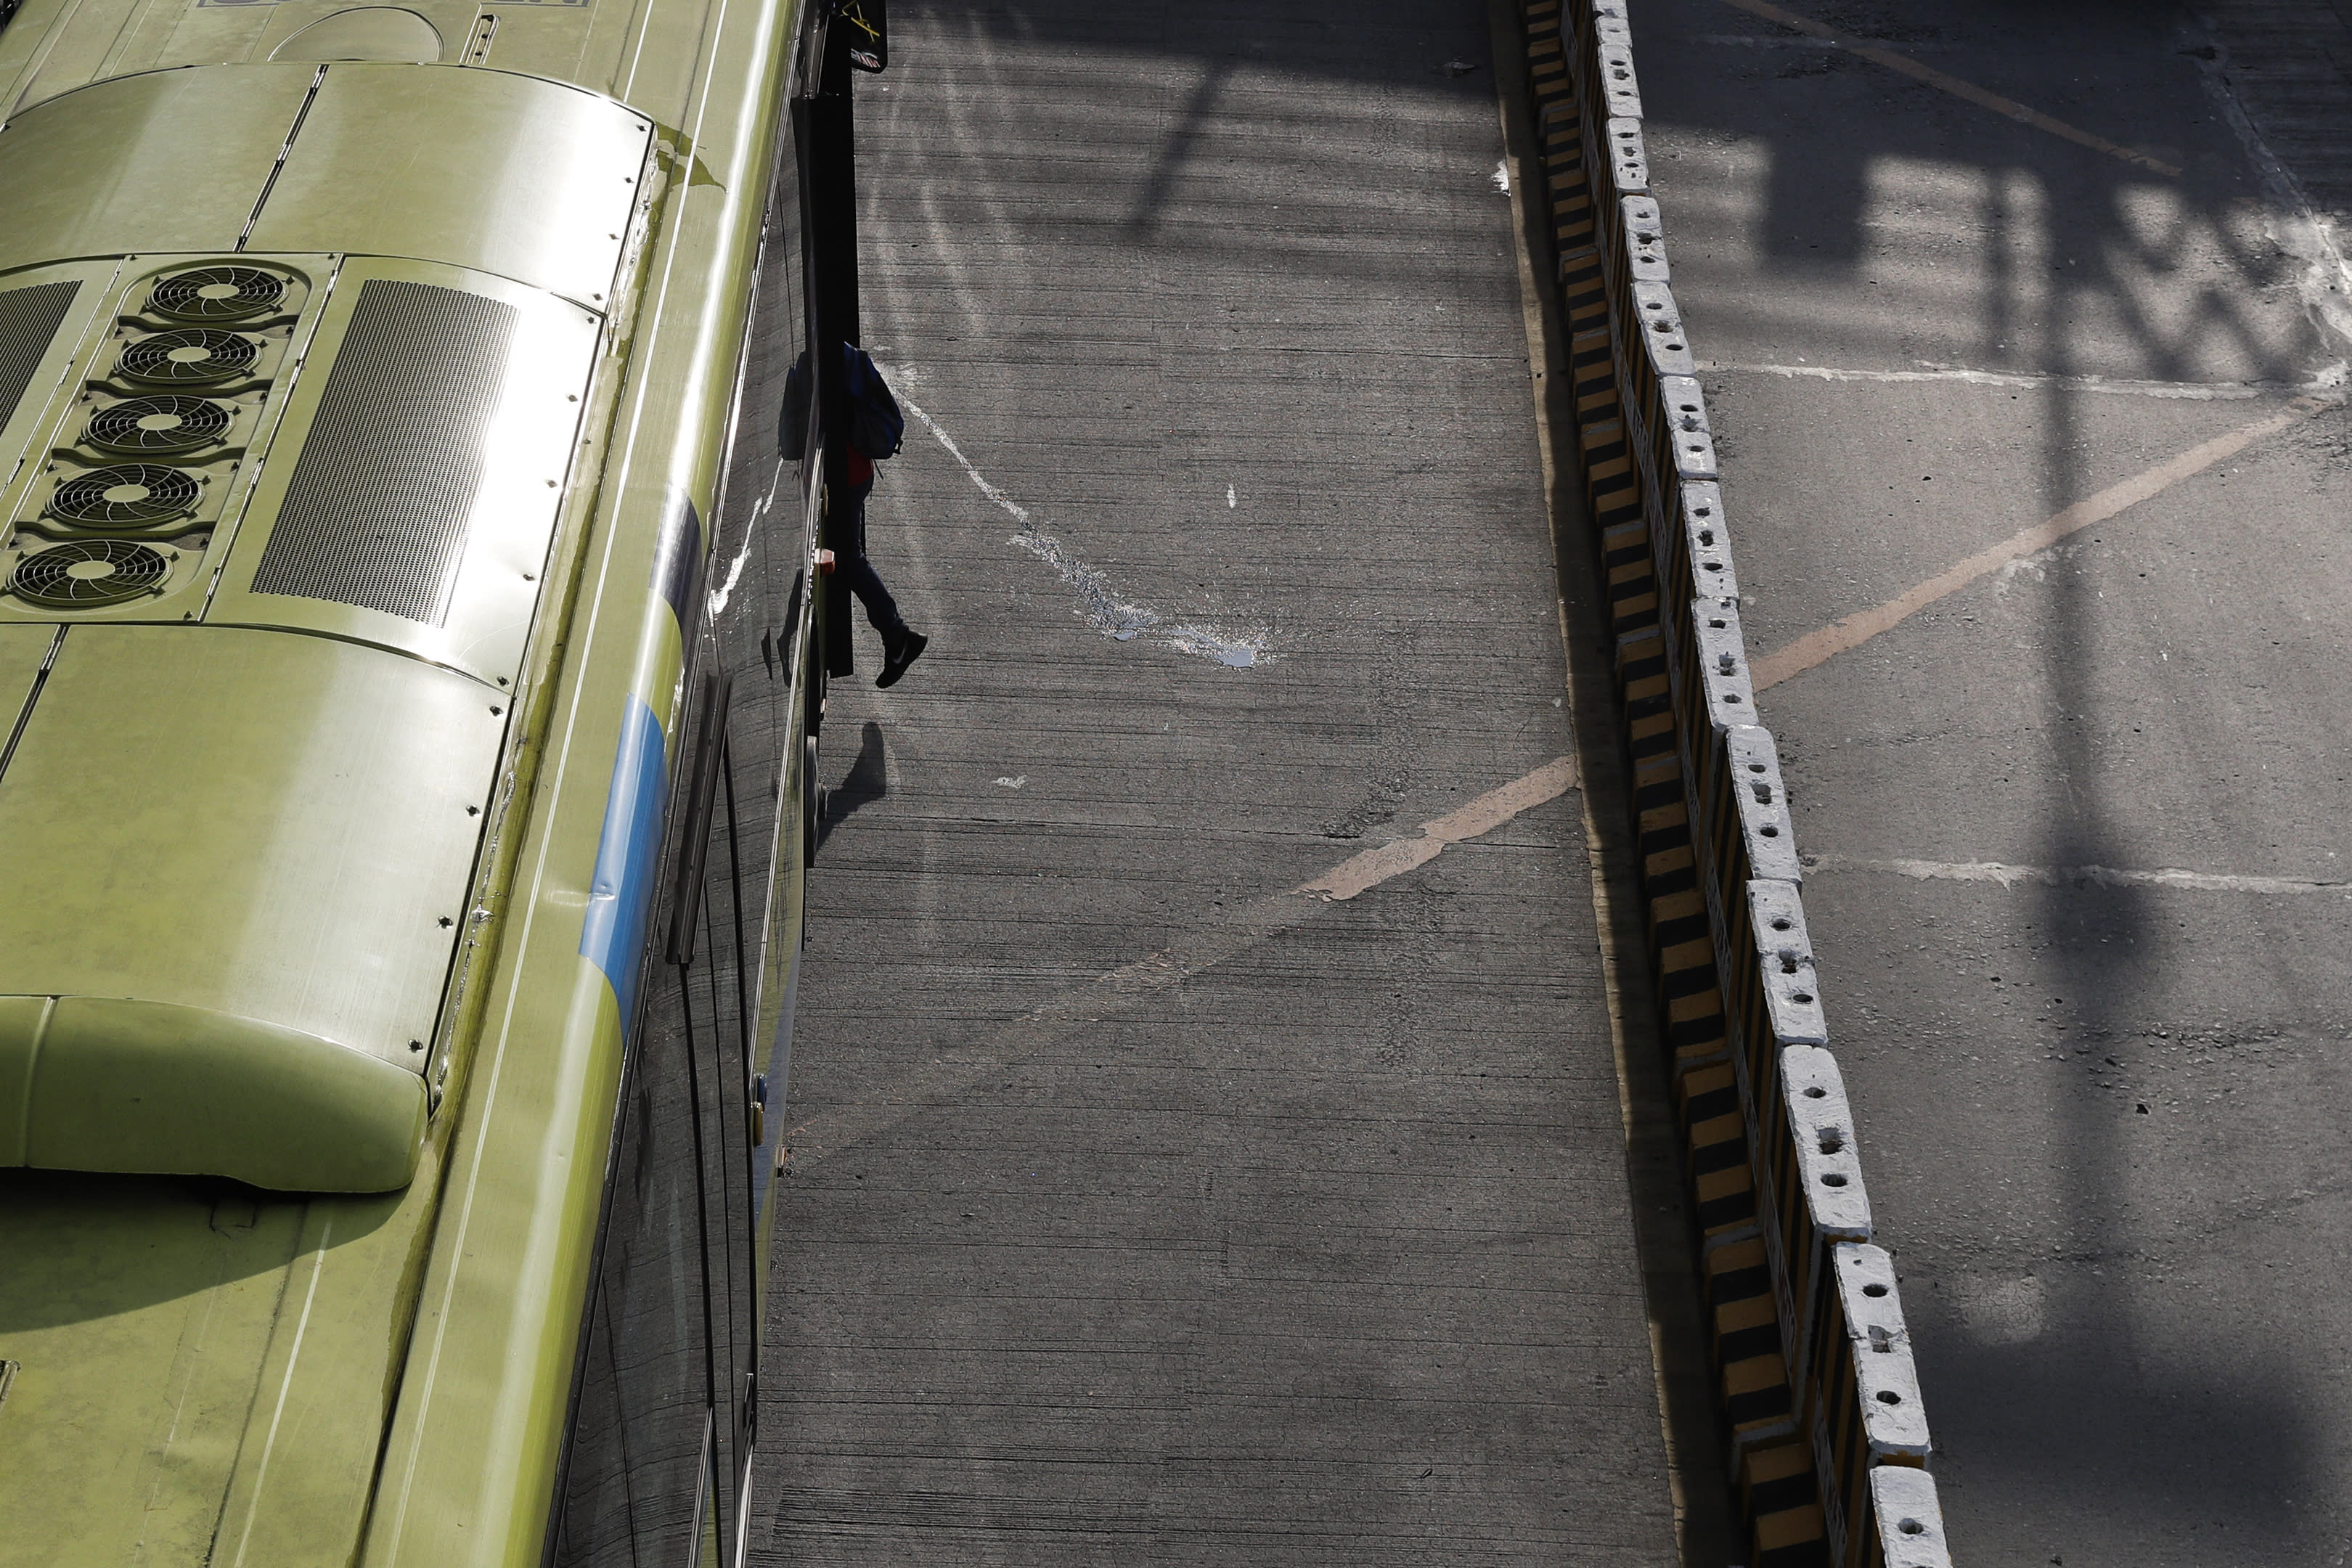 A man boards a bus in Quezon city, Philippines, Saturday, Sept. 26, 2020. Public transportation remains limited and the government orders commuters to wear face shields and face masks to help curb the spread of the coronavirus. (AP Photo/Aaron Favila)